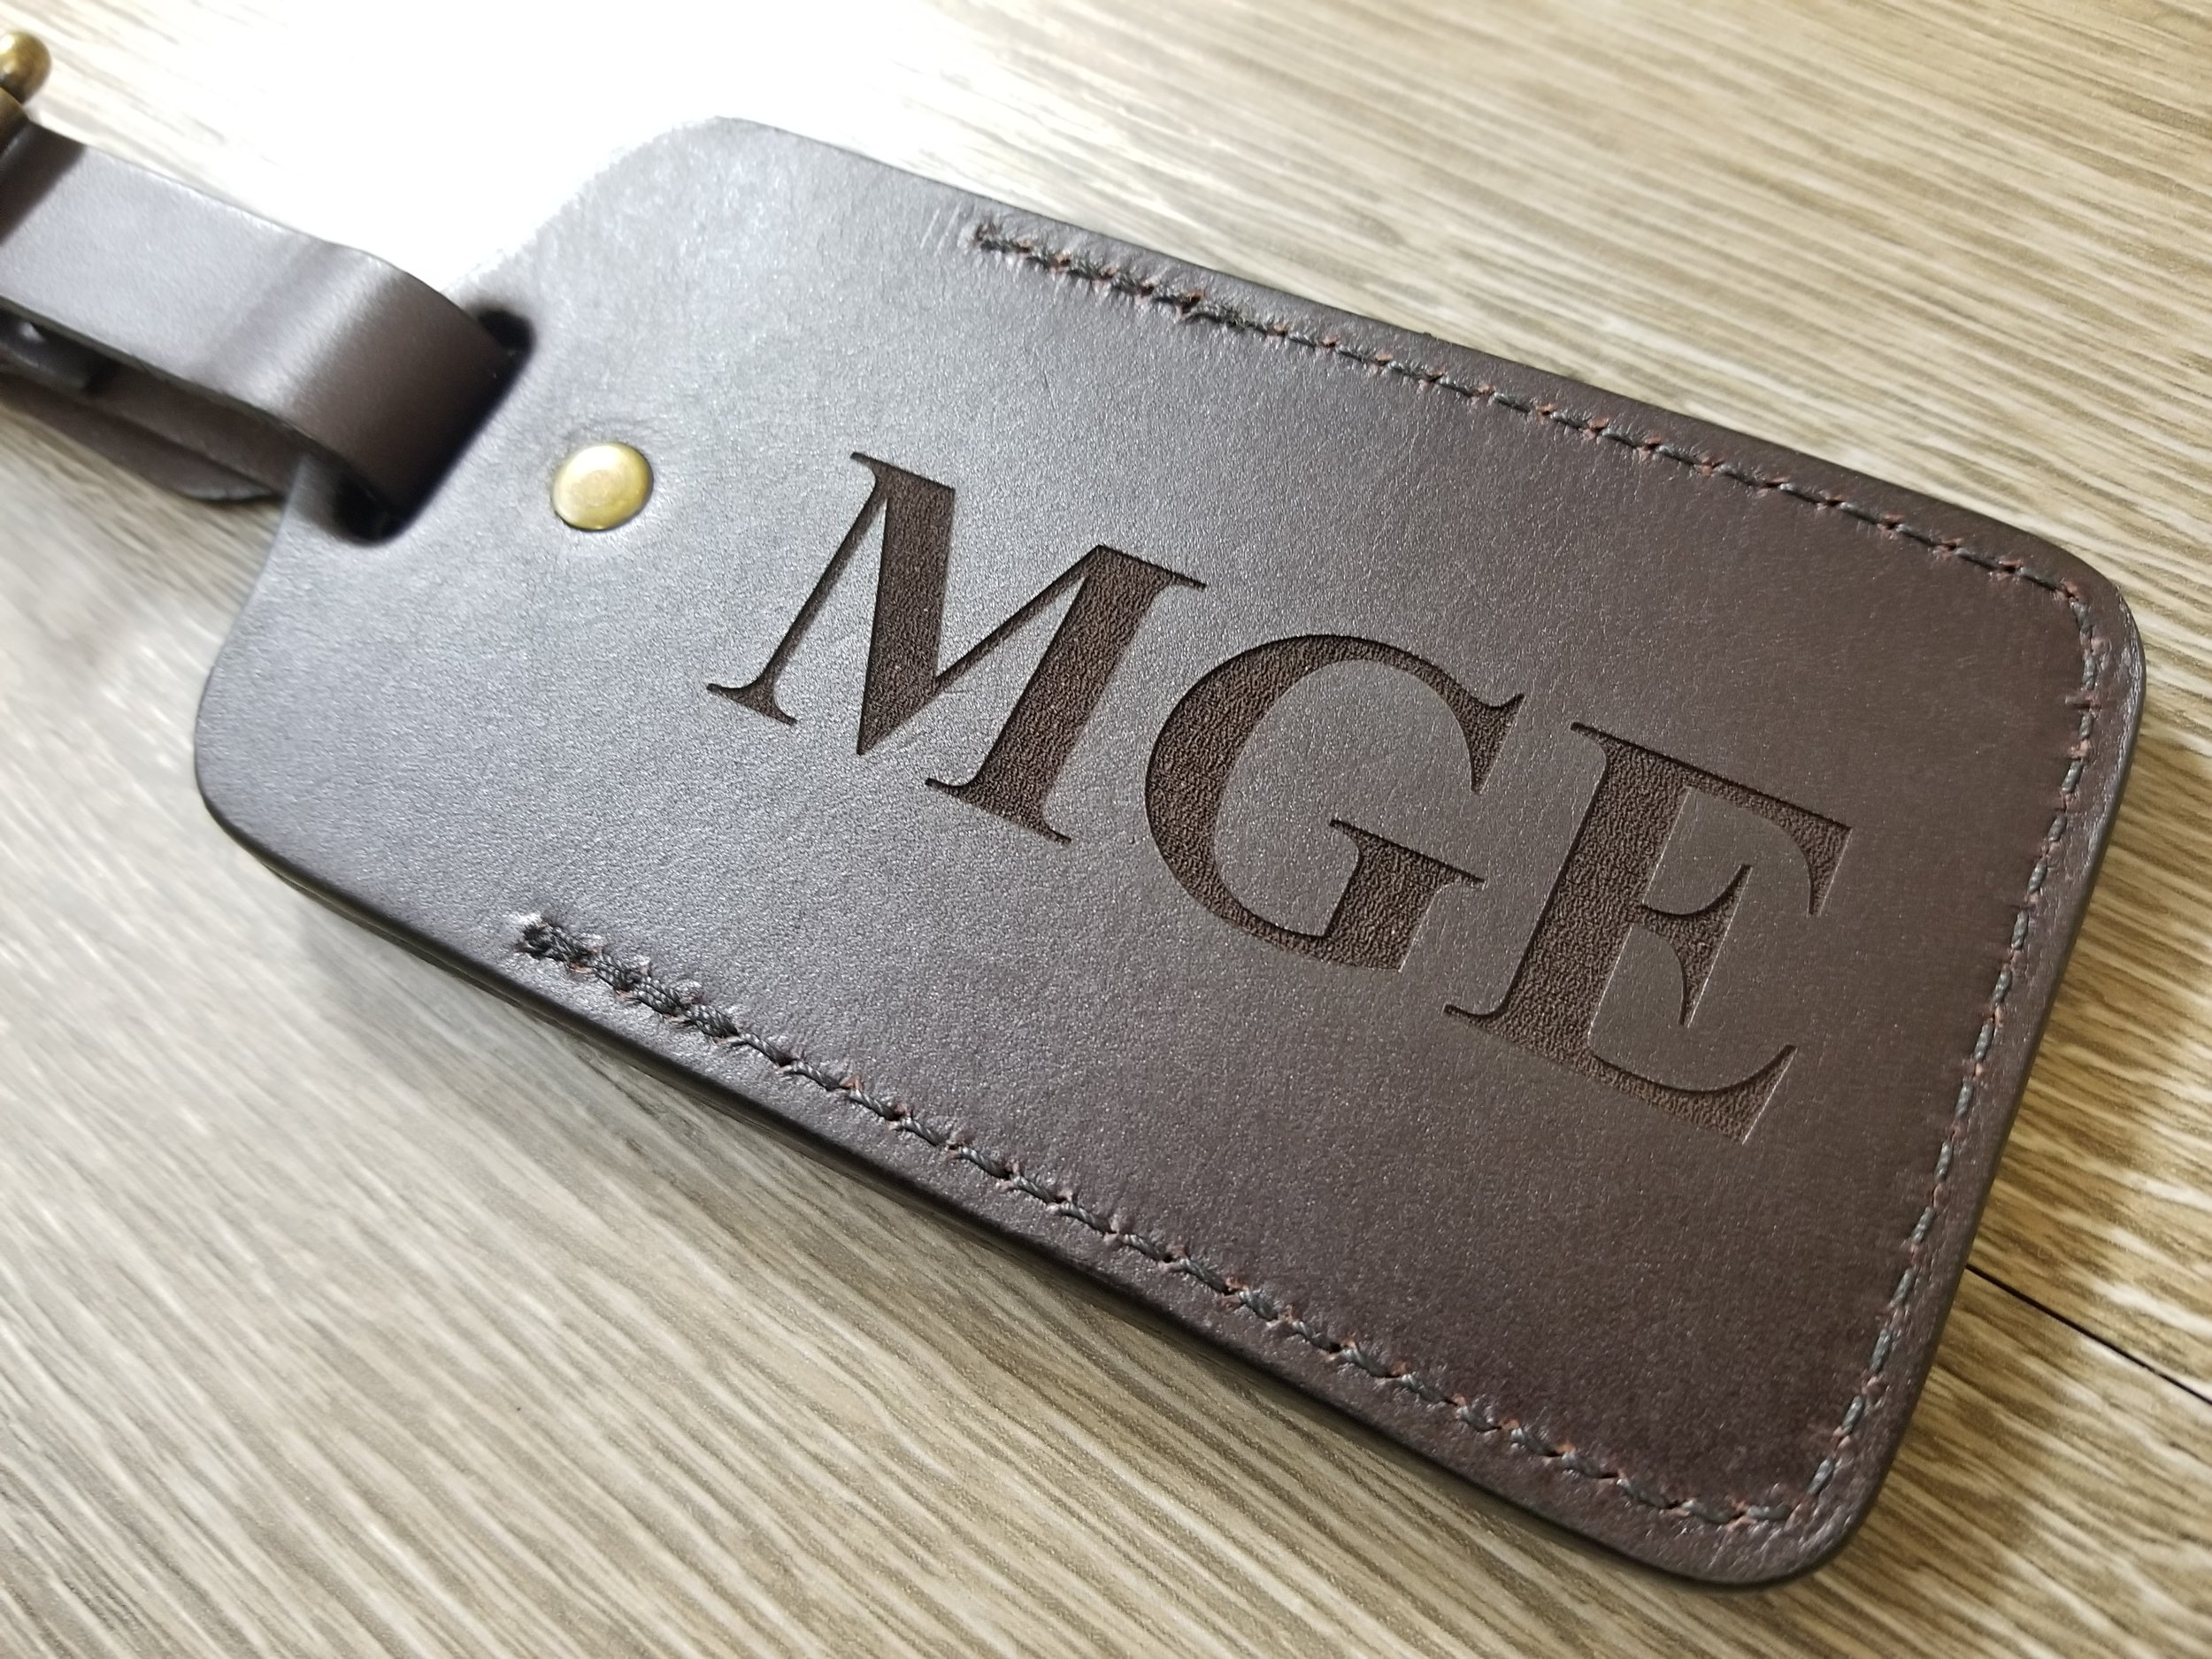 Copy of Engraved Leather Luggage Tag - Personalized Leather Luggage Tag - Custom Luggage Tags - Engraved Luggage Tags - Monogram Luggage Tag - Custom Projects - Engrave It Houston